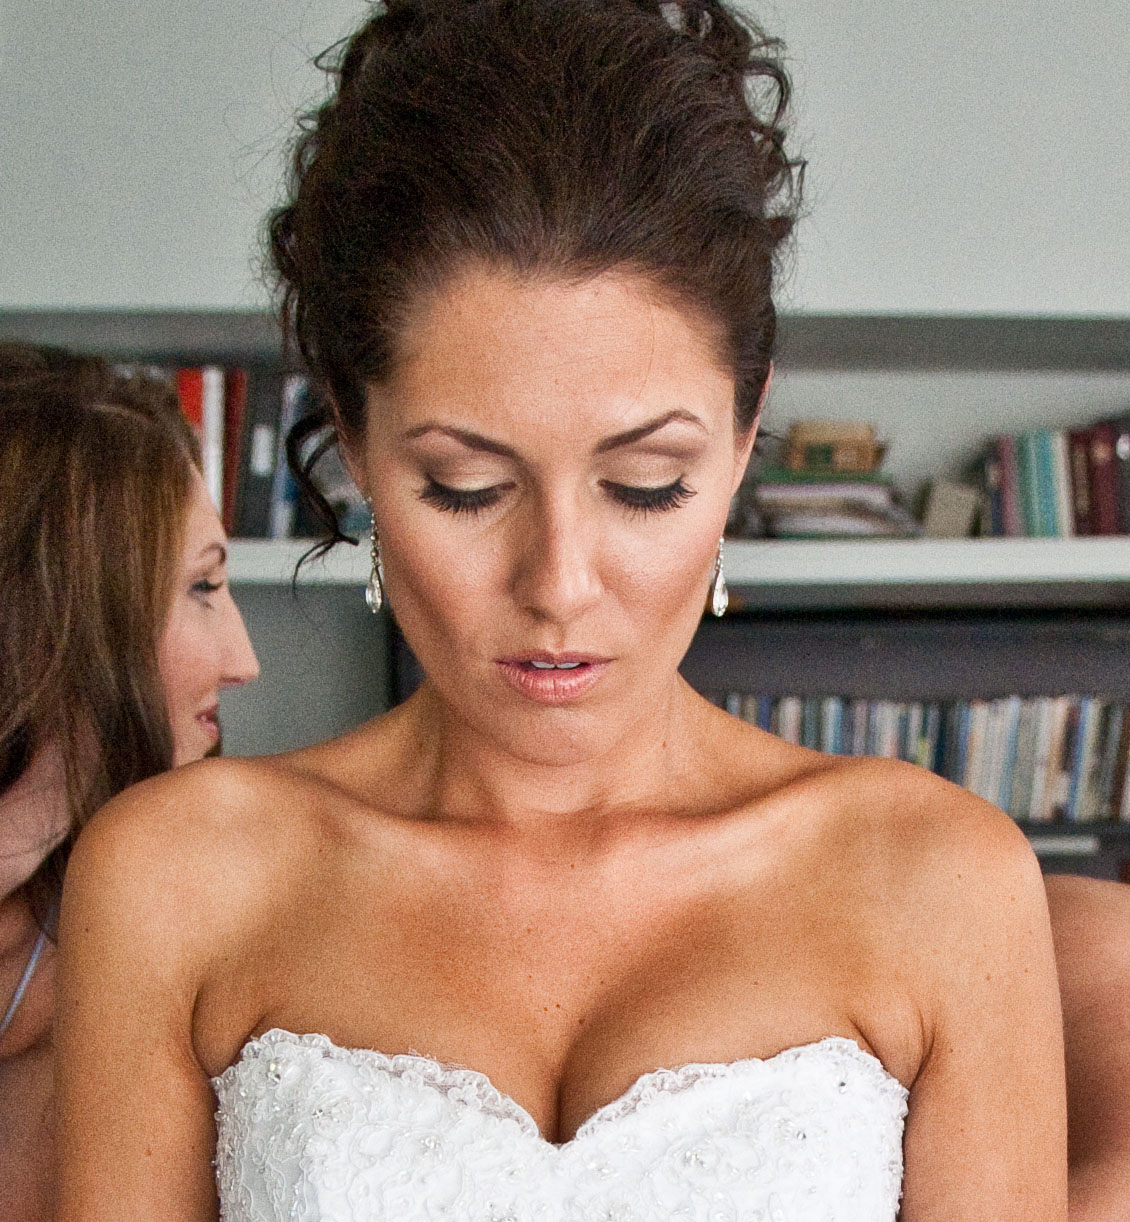 Airbrush Makeup Wedding Photos : Bridal Airbrush Makeup - BE AMAZING